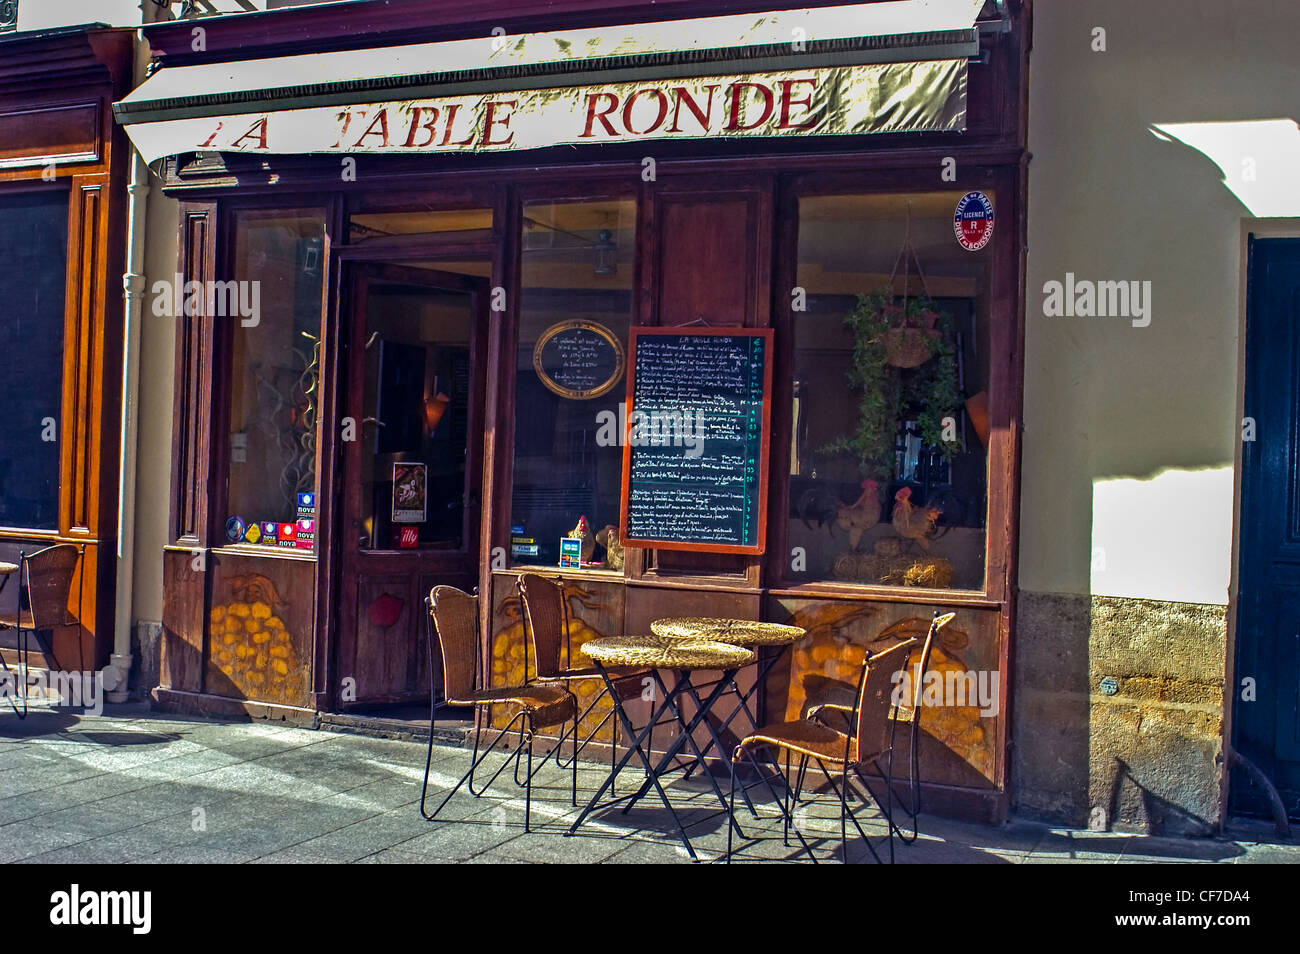 Old french bistro restaurant stock photos old french - Restaurant la table ronde marseille ...